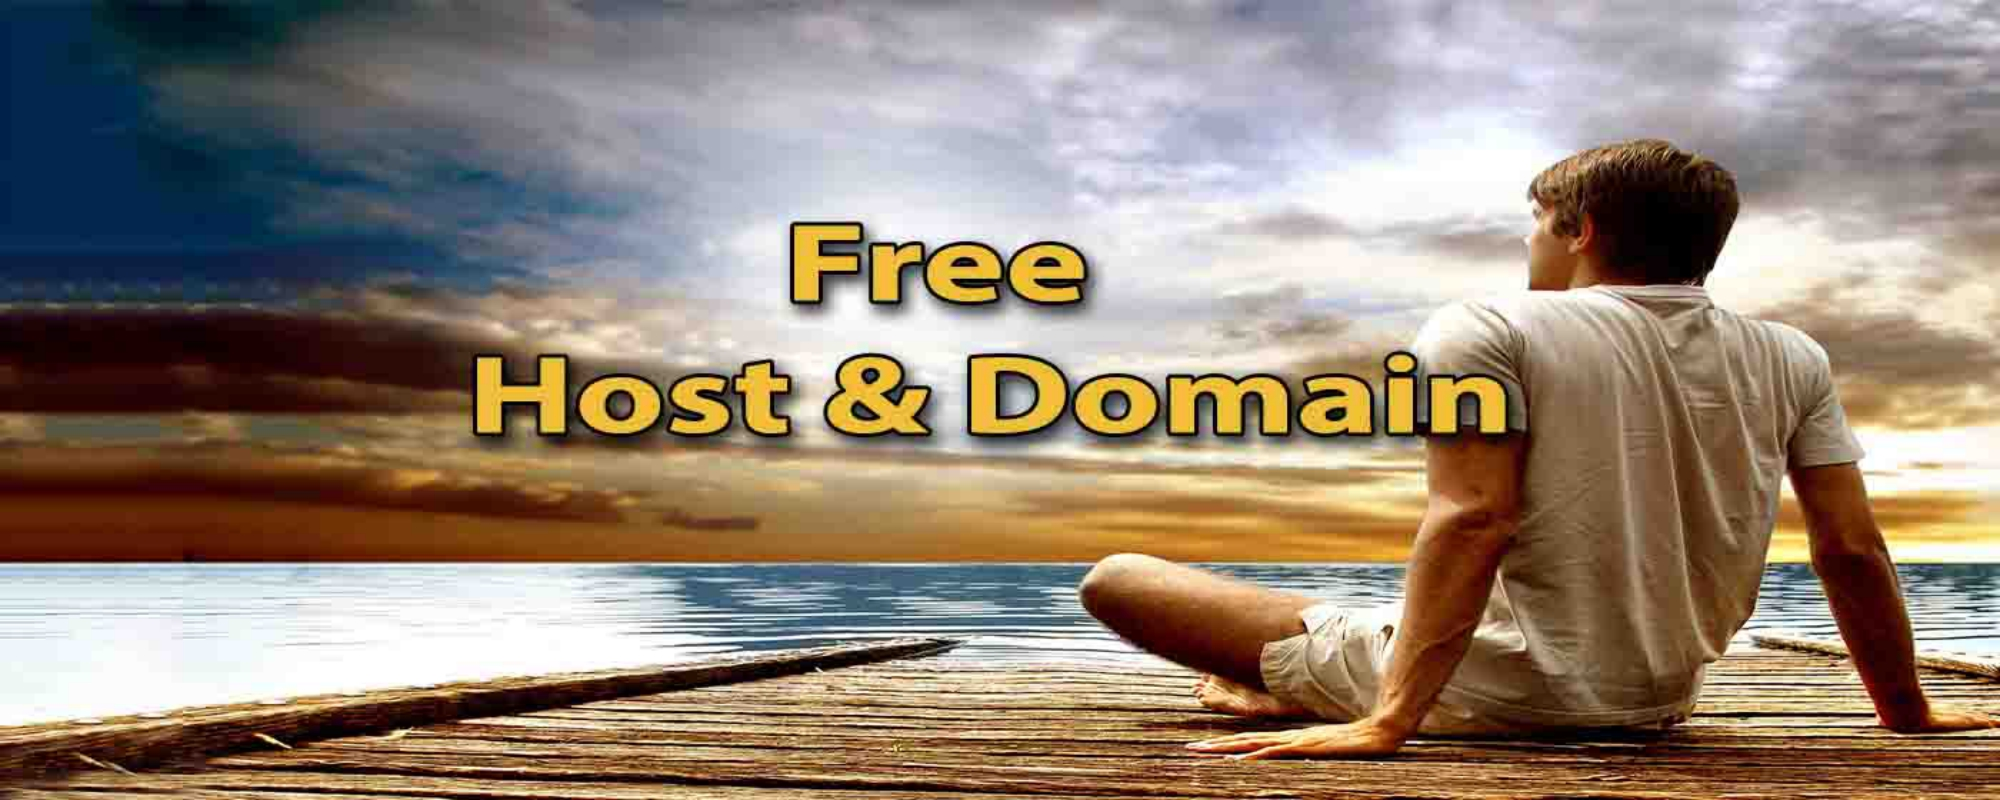 Free Domain & Host for First Year!